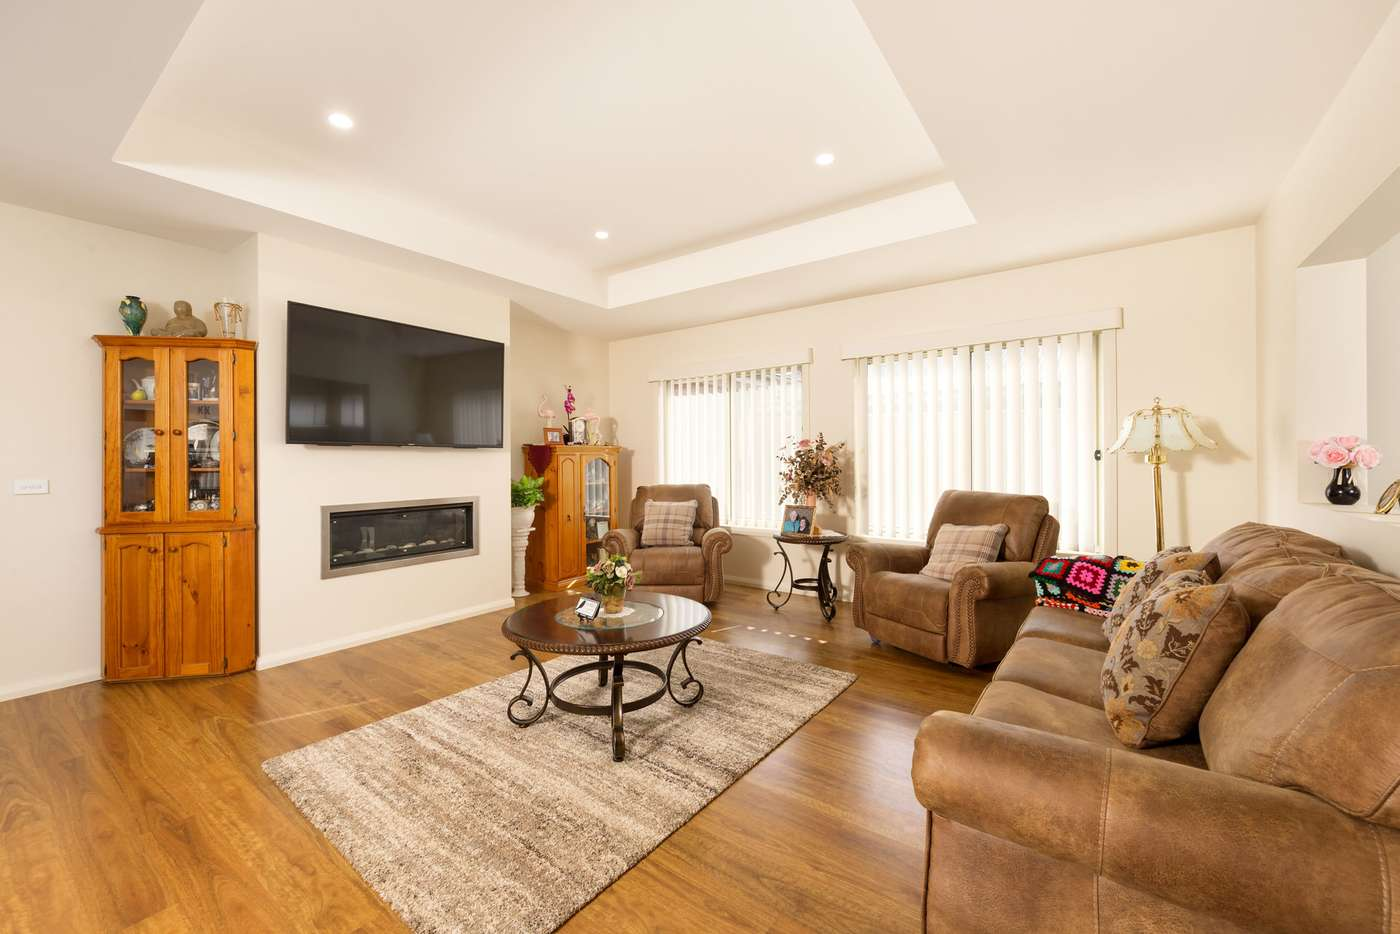 Fifth view of Homely house listing, 4 Gillman Terrace, Wodonga VIC 3690